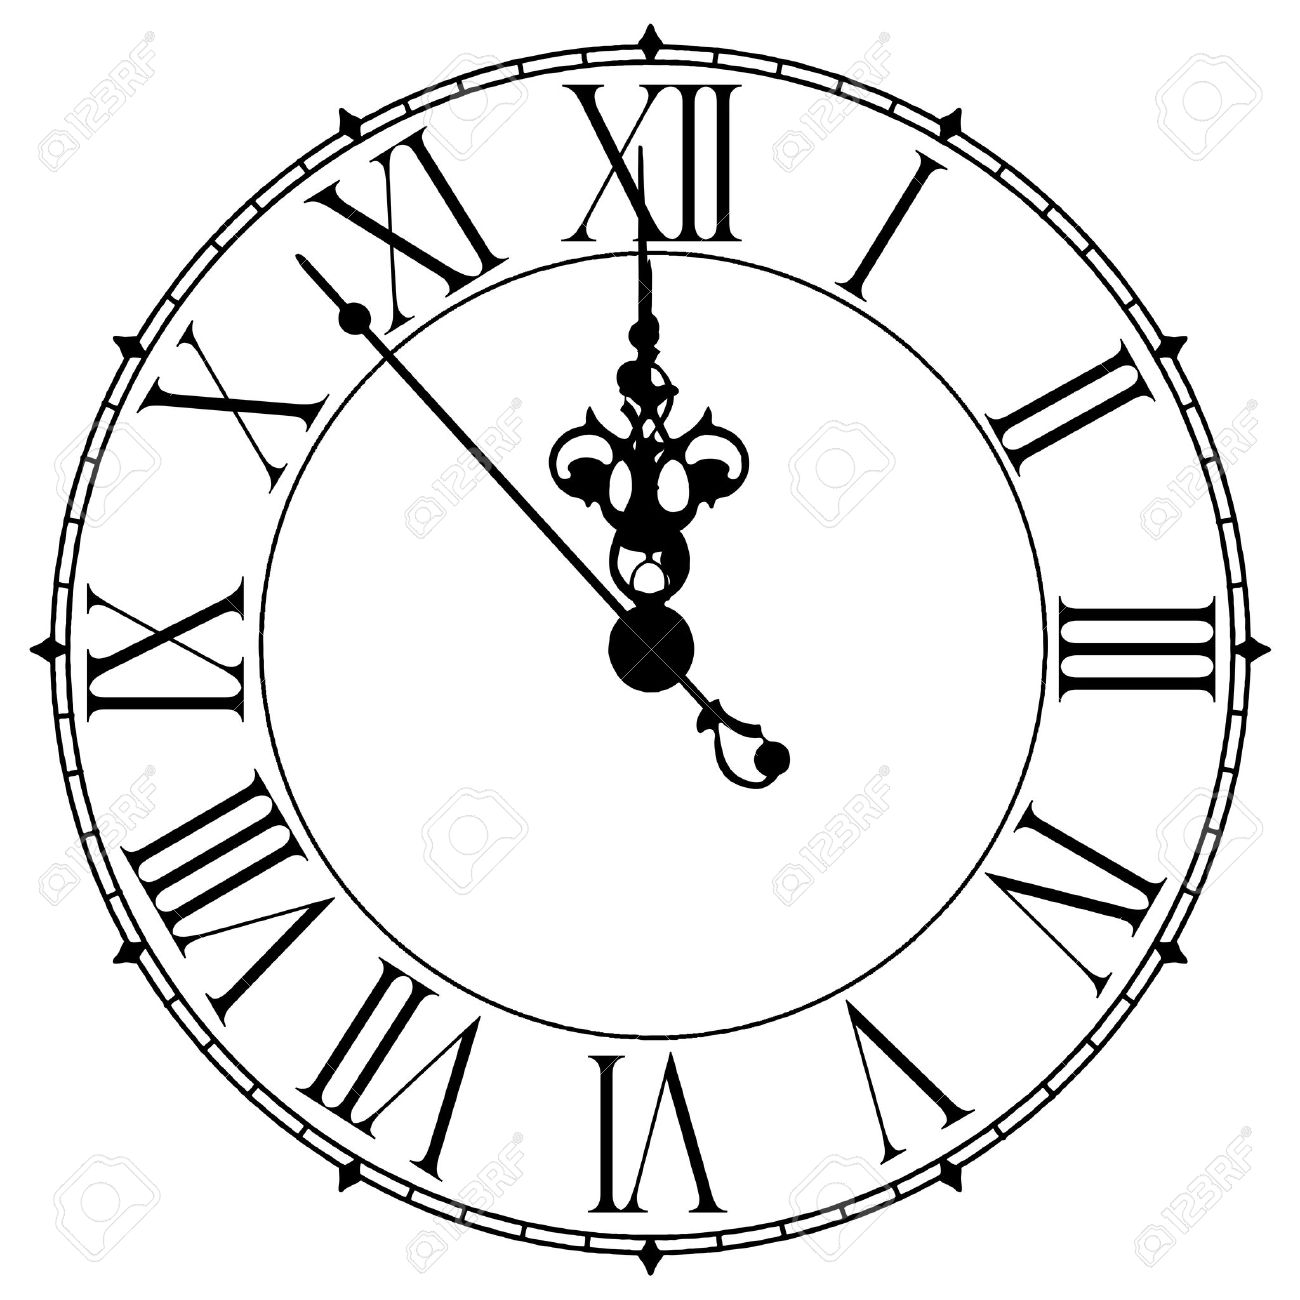 Image of old antique wall clock 7 seconds to midnight or noon stock image of old antique wall clock 7 seconds to midnight or noon stock photo 33962272 ccuart Choice Image